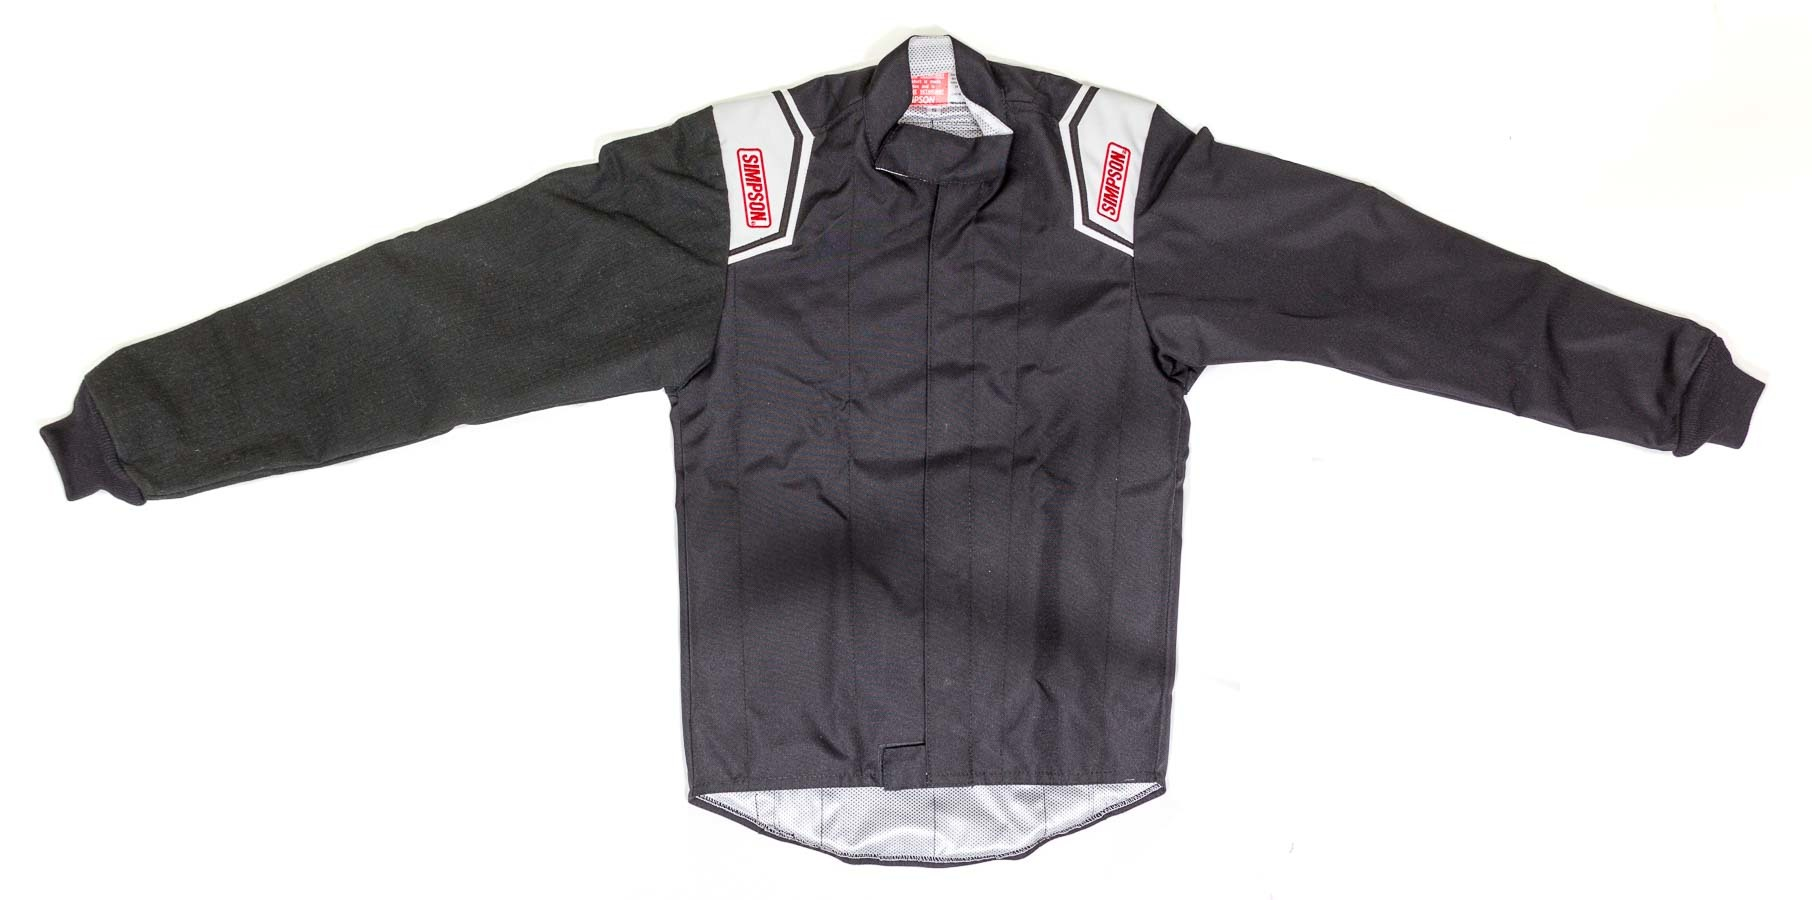 Simpson 0102182 Jacket, Driving, Apex Kart, Carbon X Sleeve, Black, Small, Each